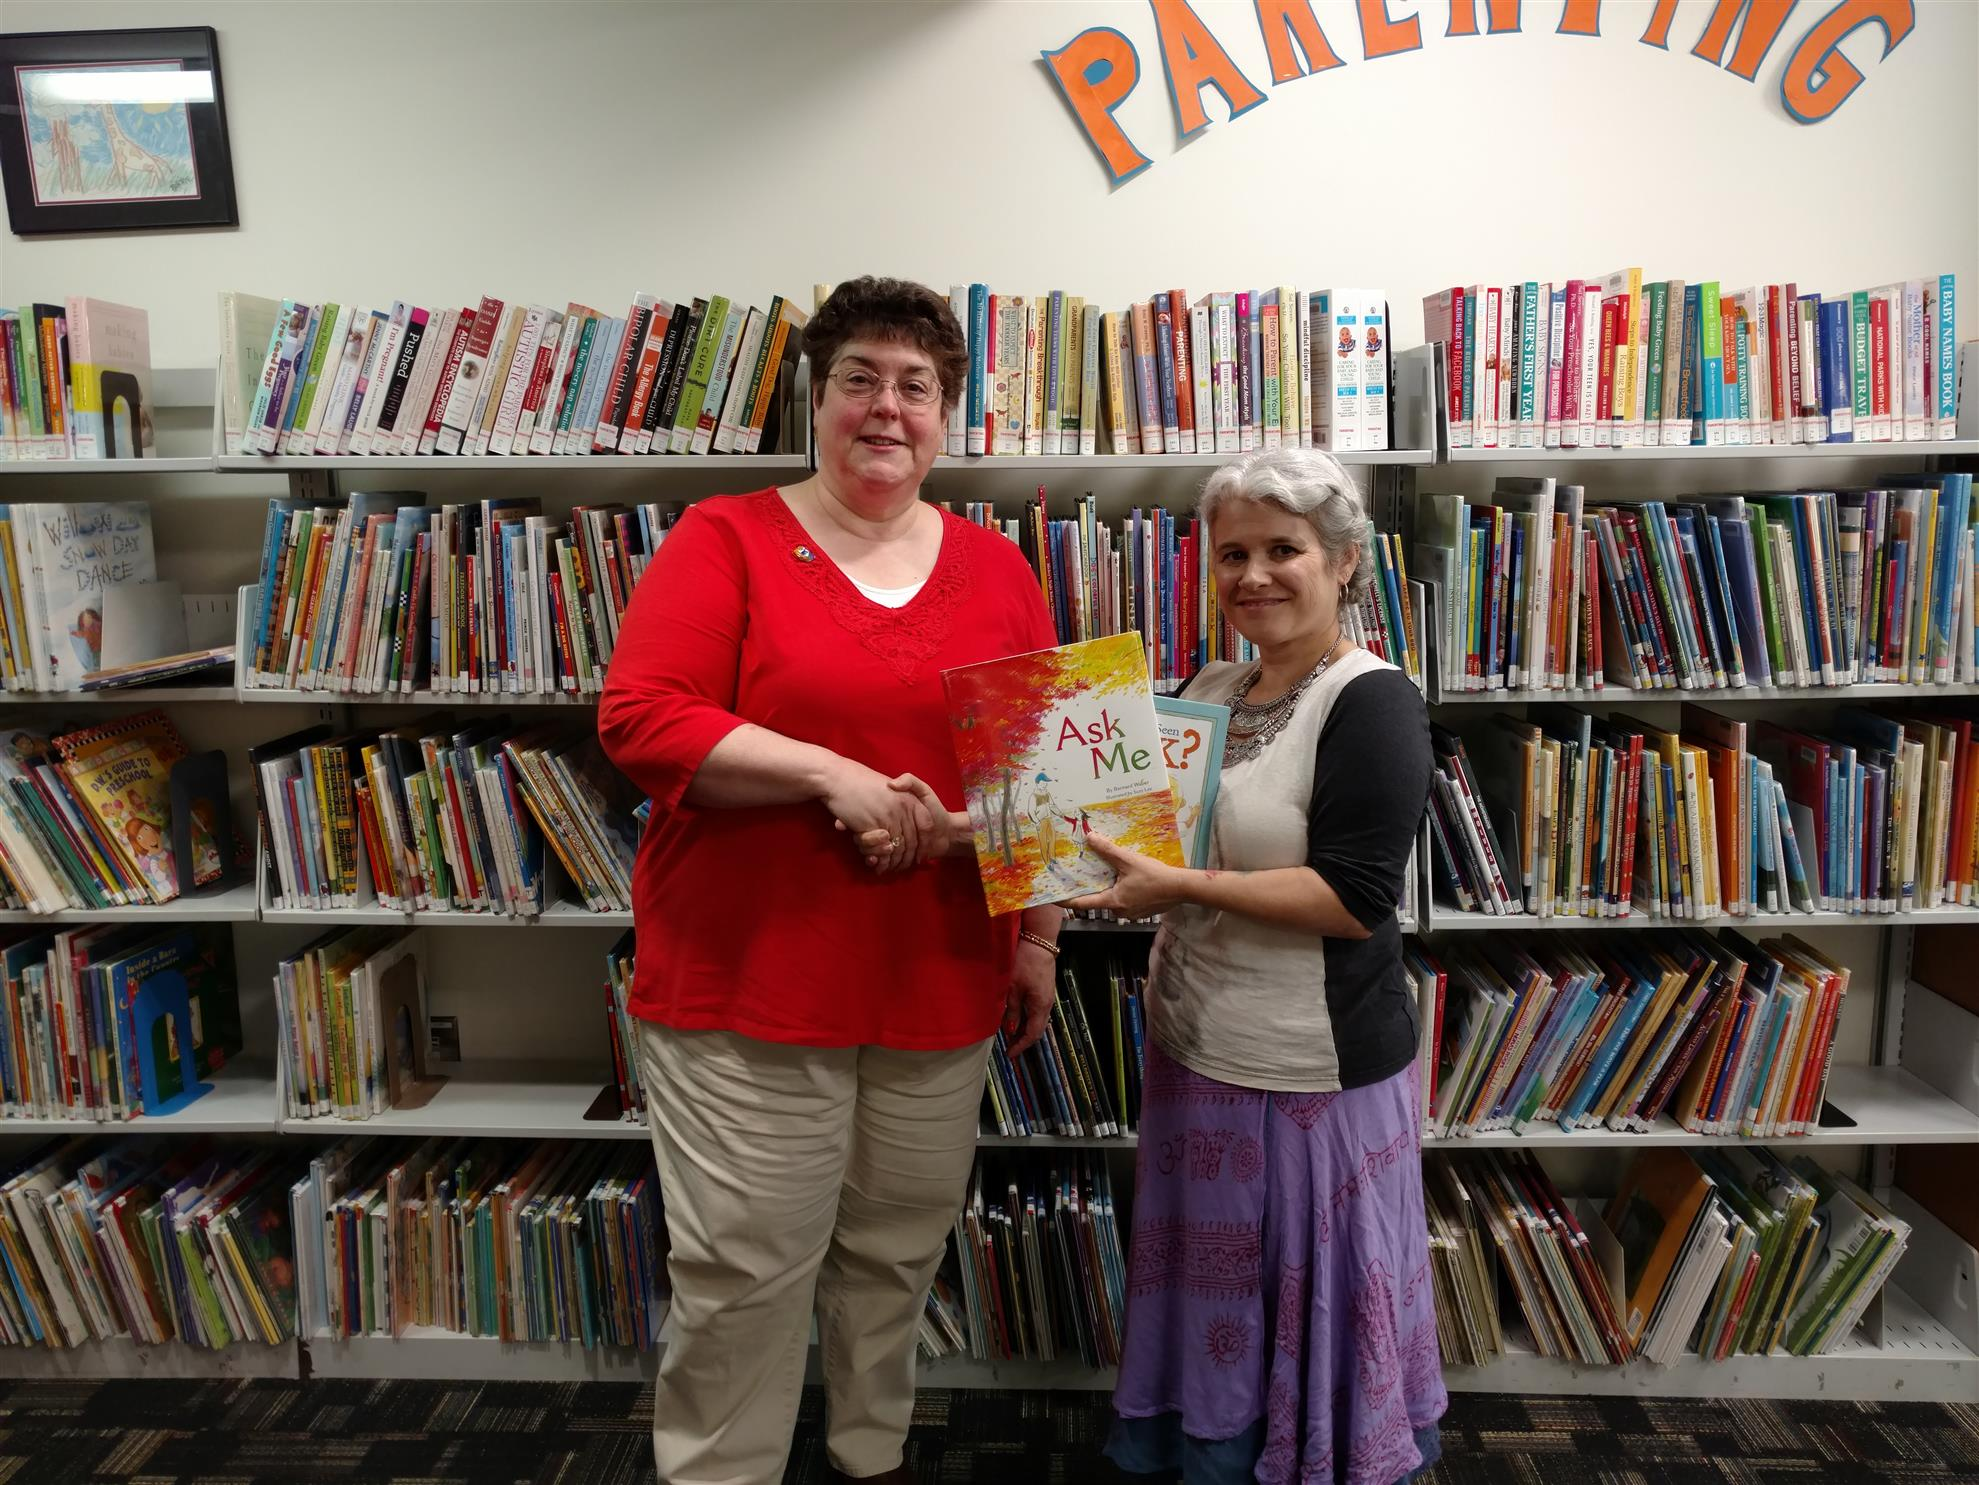 stories rotary club of westbrook gorham the next day the first books signed by marge were donated to the baxter memorial library in gorham westbrook librarian kara reiman was on vacation